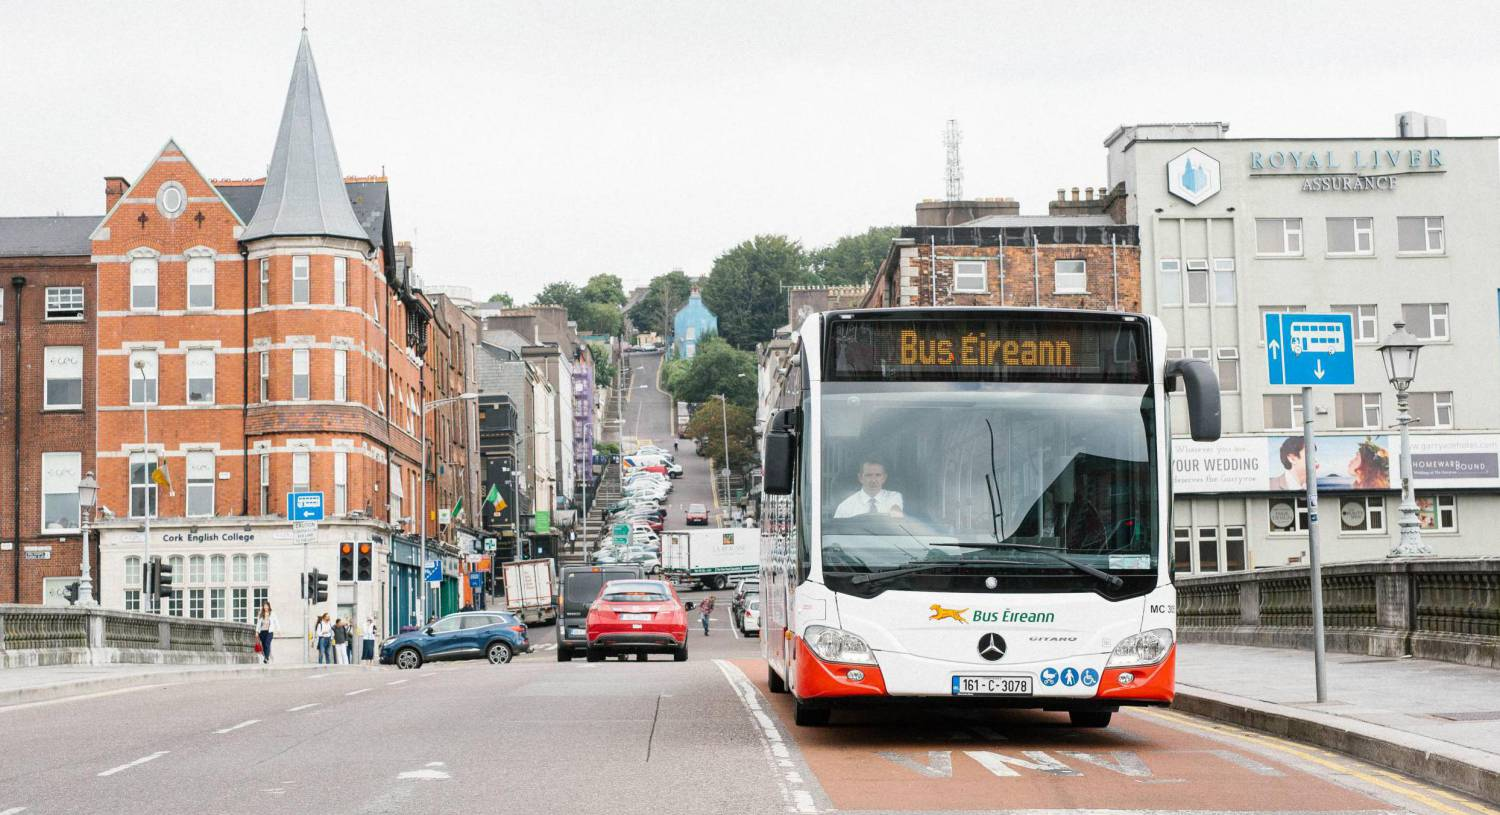 Gerard Howlin: It'd be inexcusable to pass up this chance to reform public transport